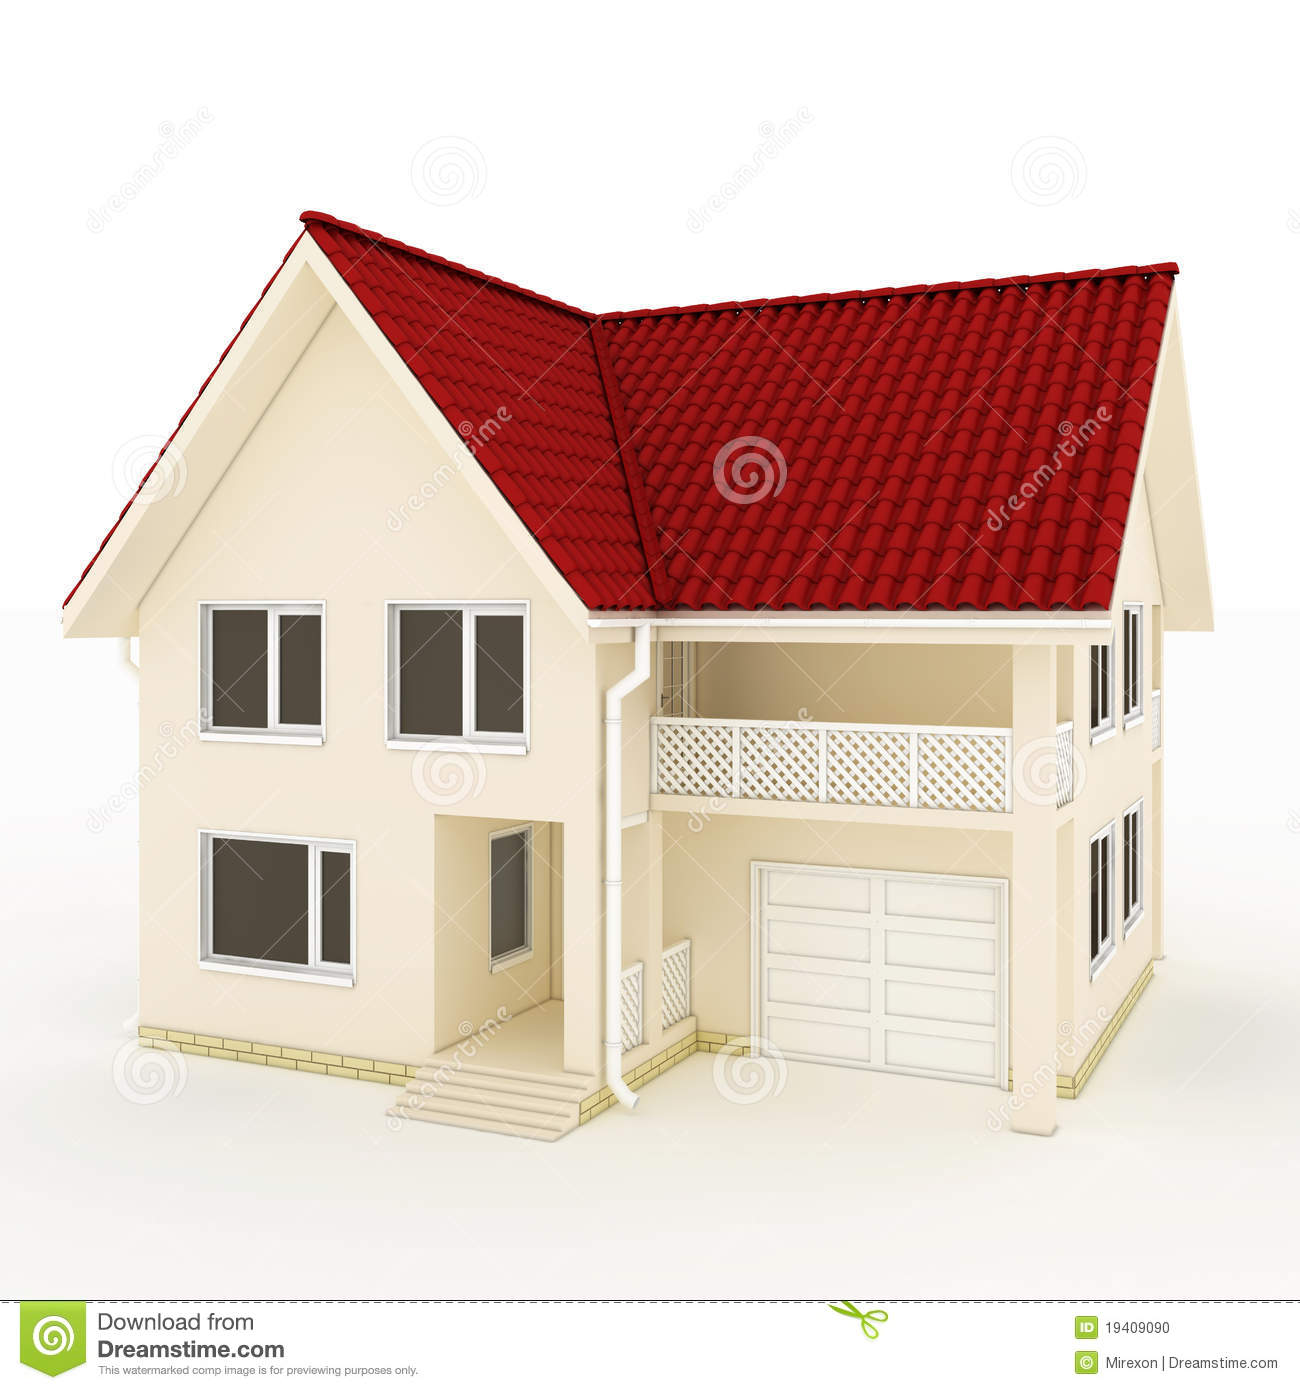 Two story house with red roof balcony and garage stock for Two story house with balcony